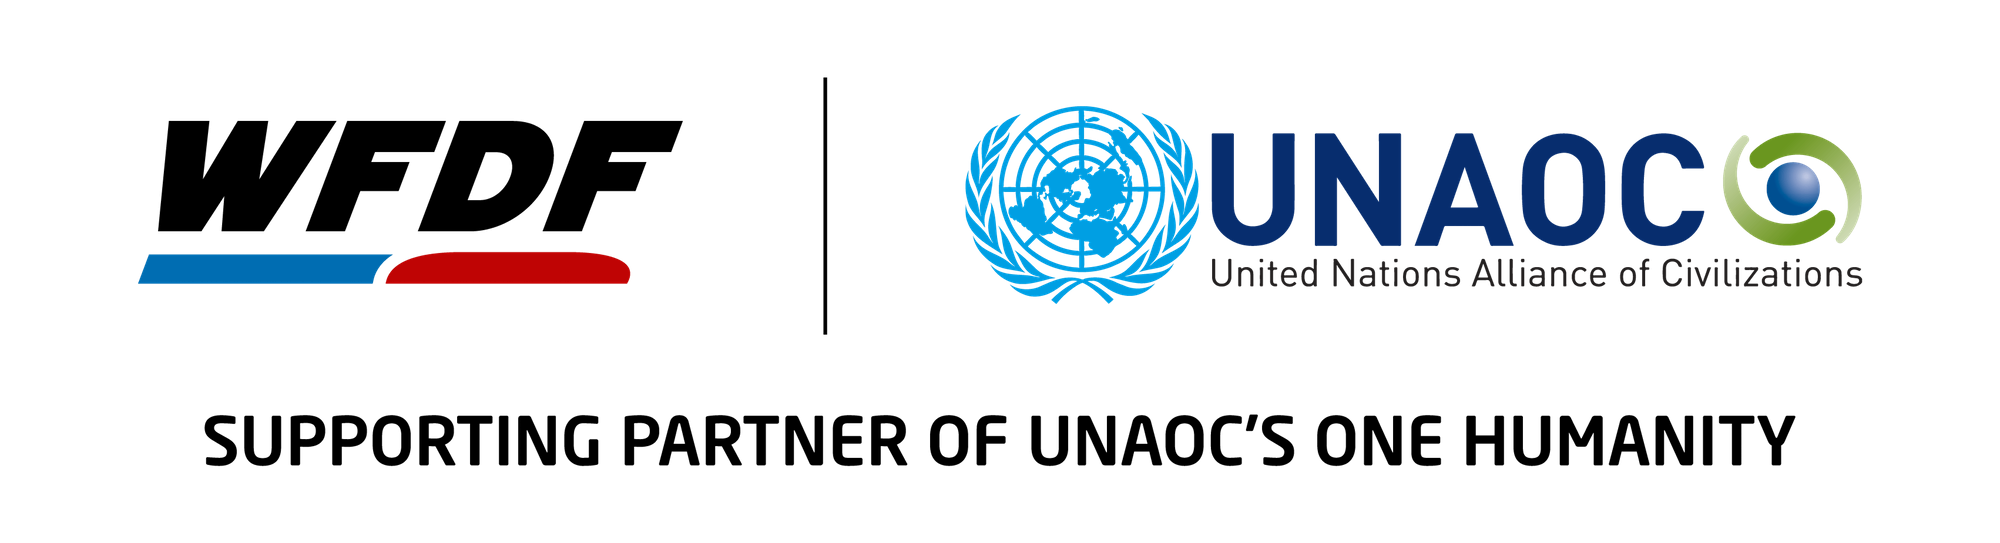 WFDF signs up to United Nations Alliance of Civilizations campaign